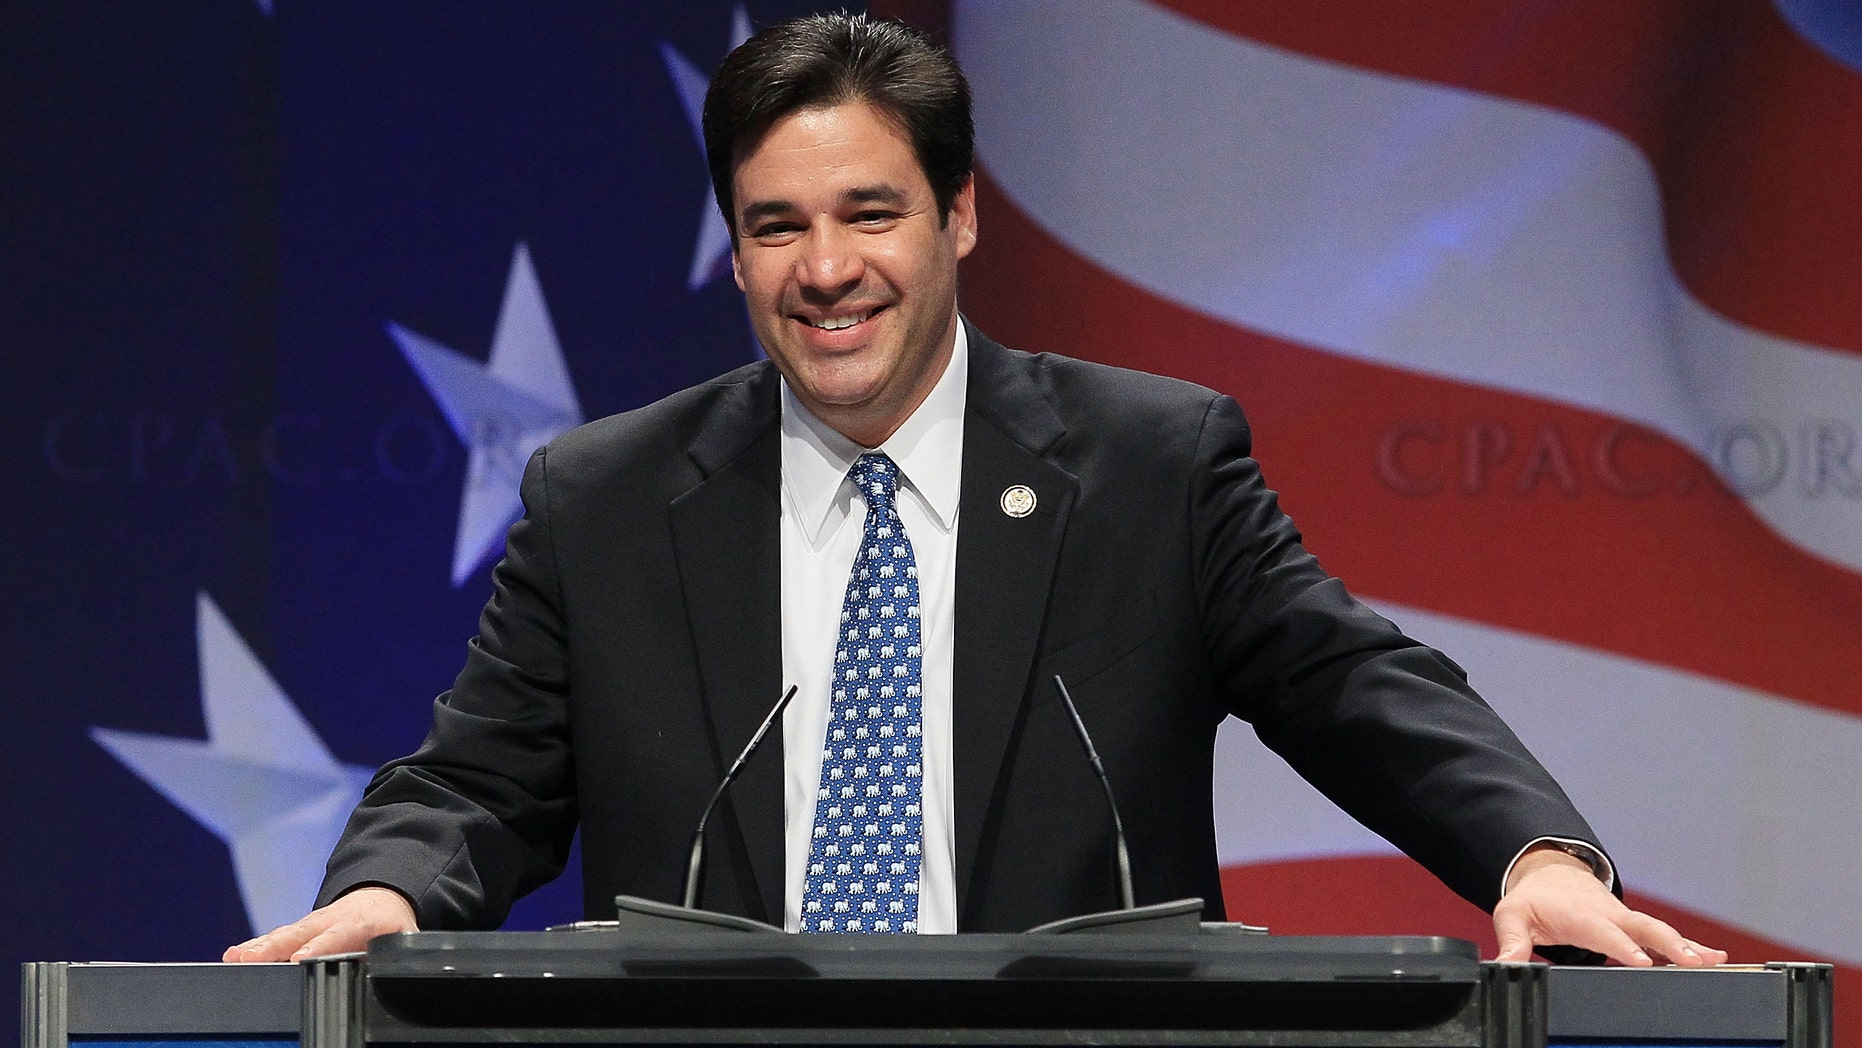 Rep. Raul Labrador at the Conservative Political Action conference on February 10, 2011 in Washington, DC.